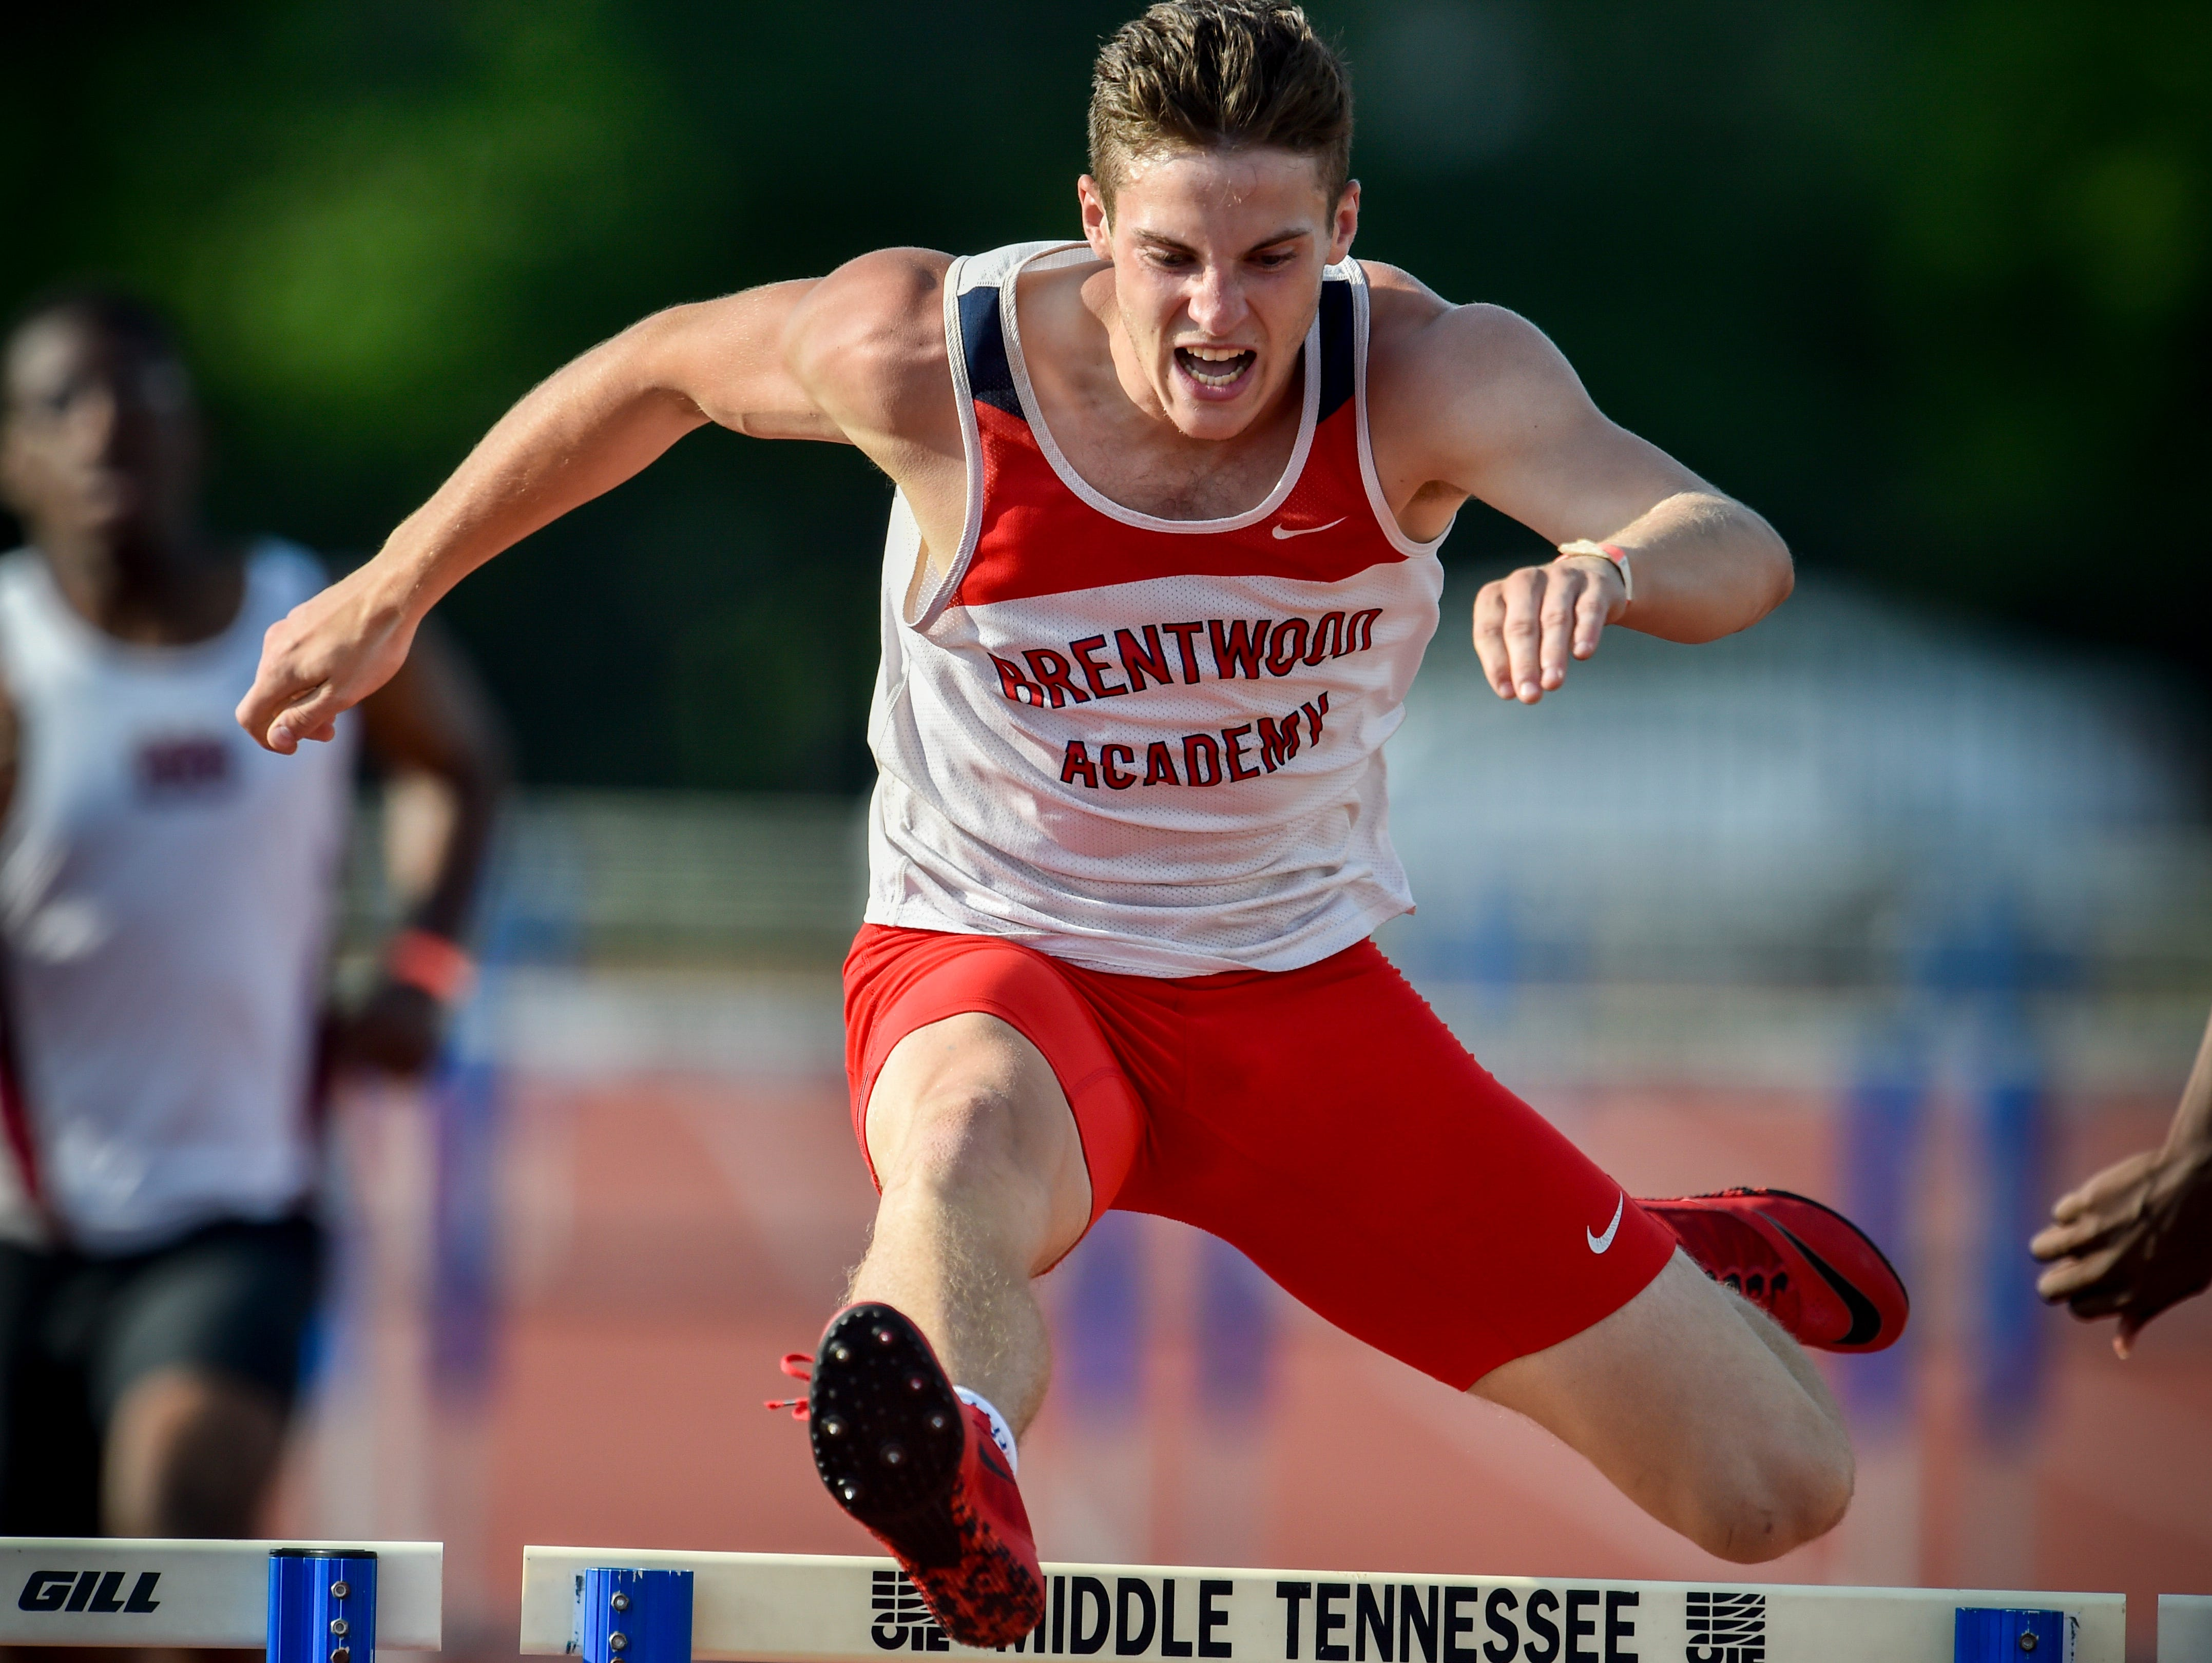 Brentwood Academy's George Patrick competes in the D-II 300m hurdles during the Spring Fling boys state track meet at MTSU's Dean Hayes Track and Field Stadium, Friday, May 27, 2016, in Murfreesboro, Tenn. Patrick finished in first place.